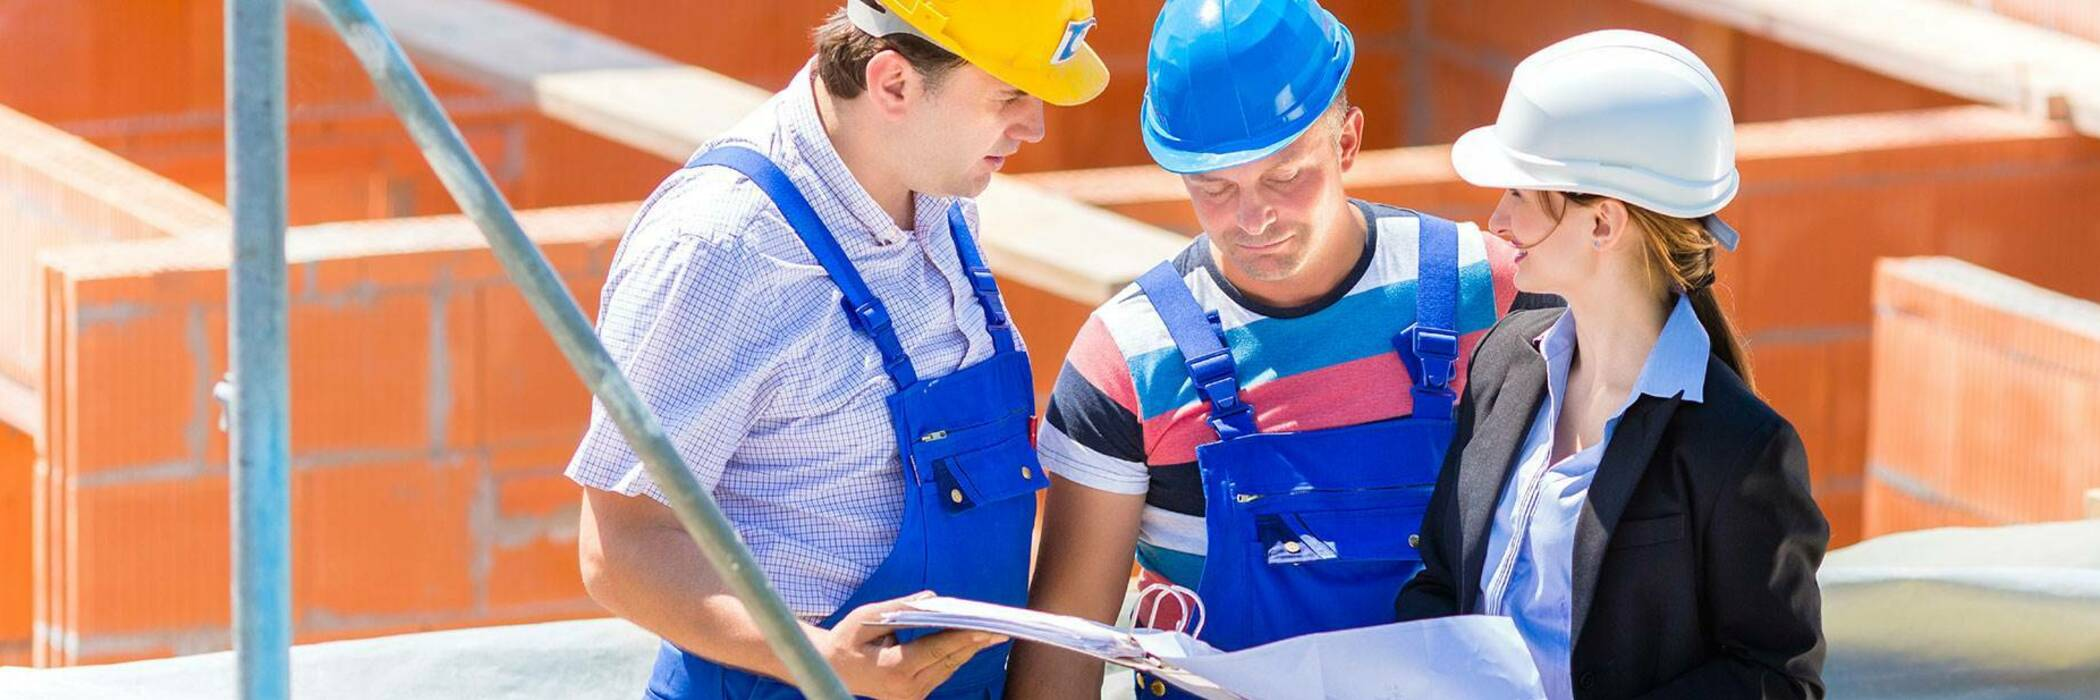 Inspections for building consent compliance hero